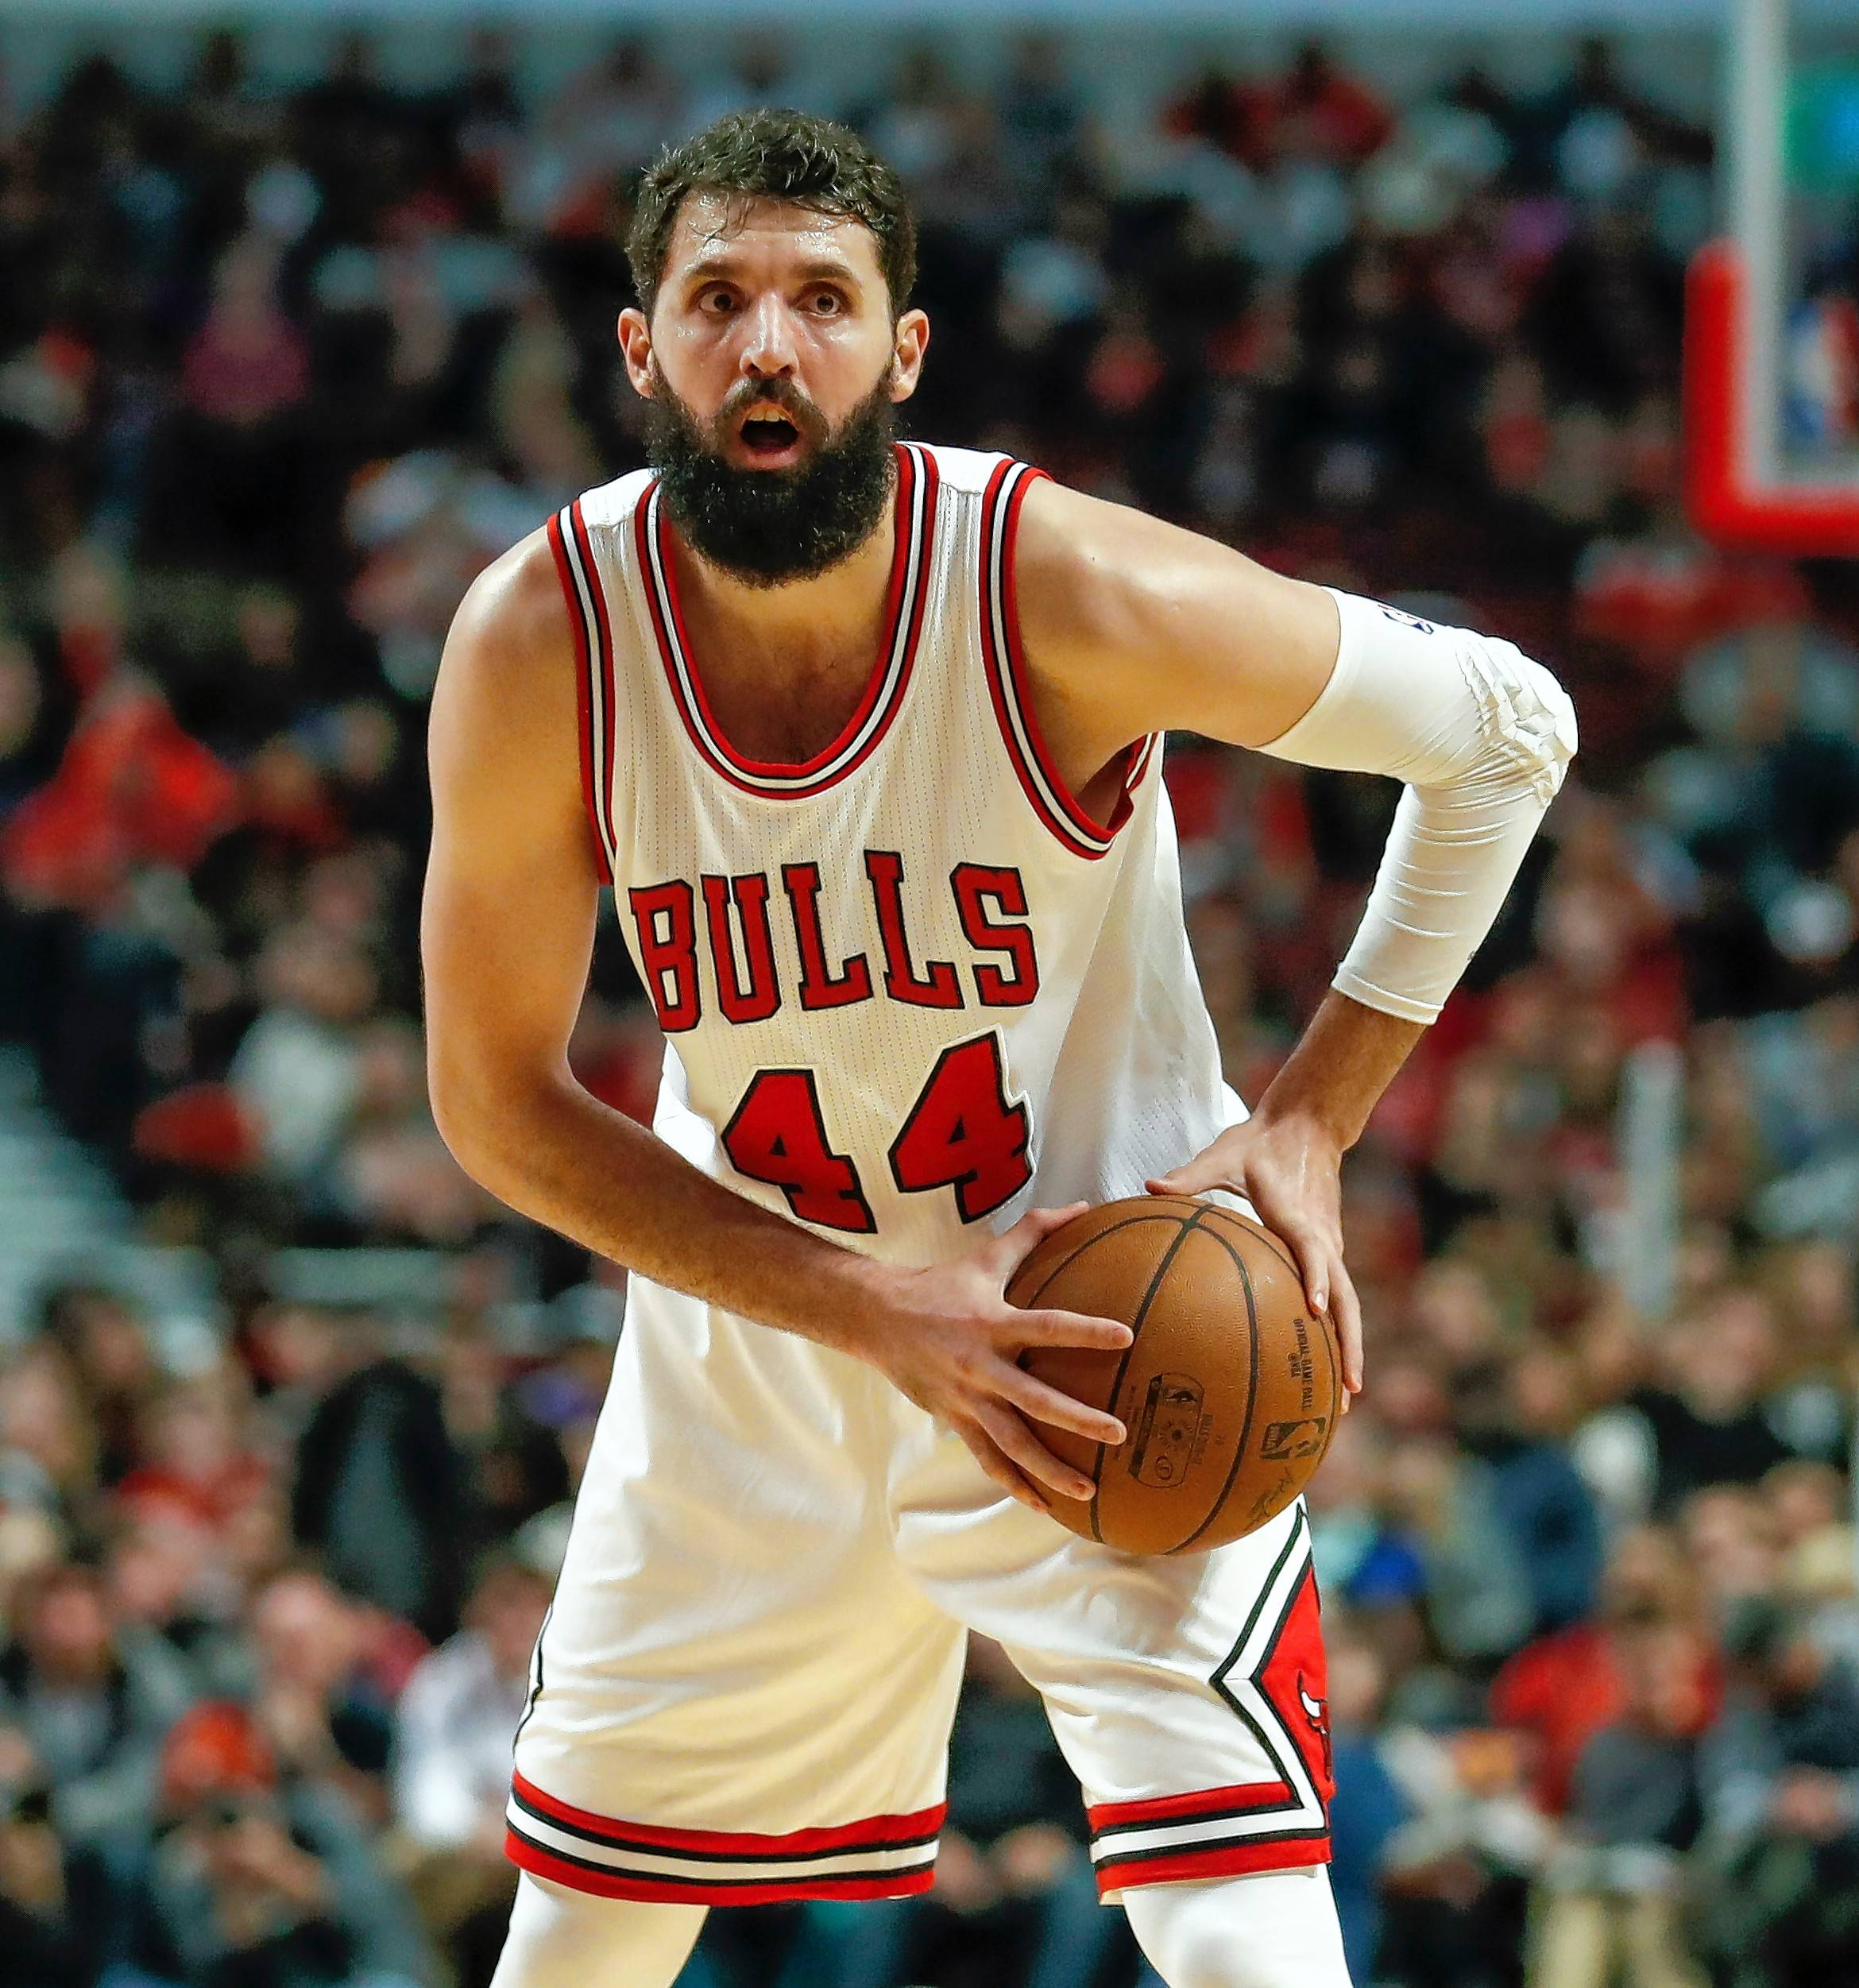 Chicago Bulls may give Mirotic a few more practices before returning to game action